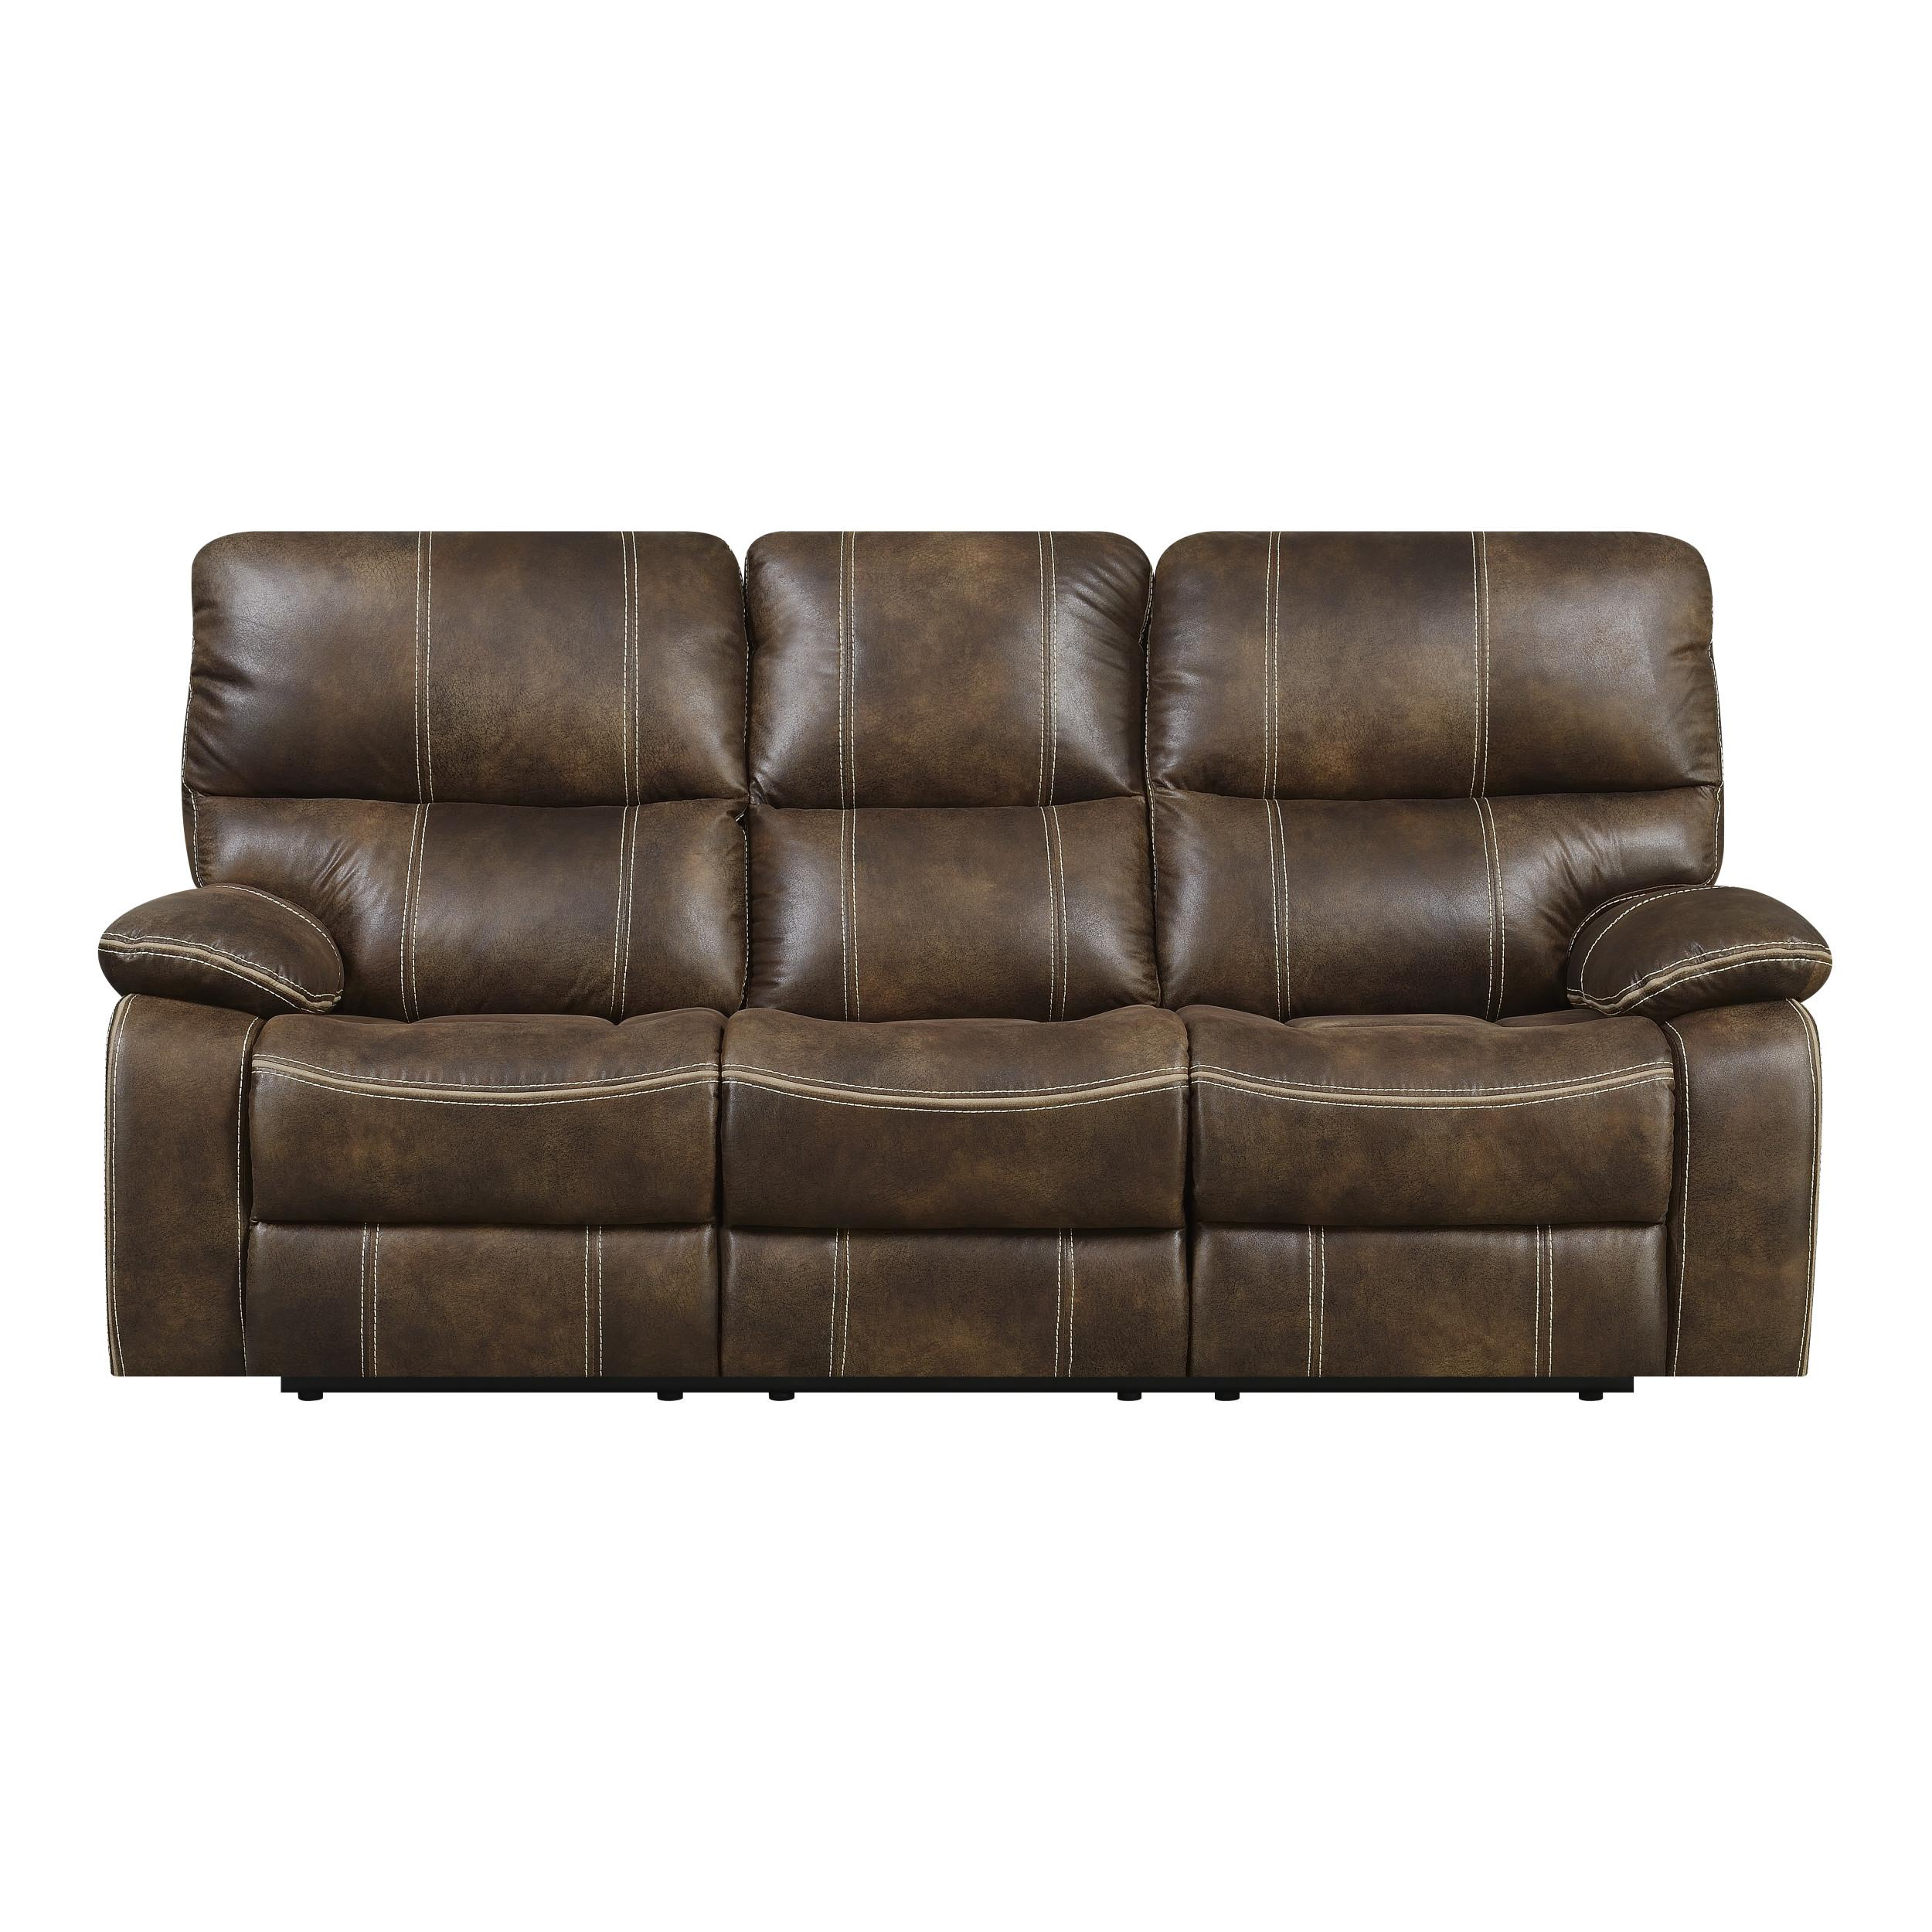 Super Emerald Home Jessie James Chocolate Brown Reclining Sofa Gamerscity Chair Design For Home Gamerscityorg